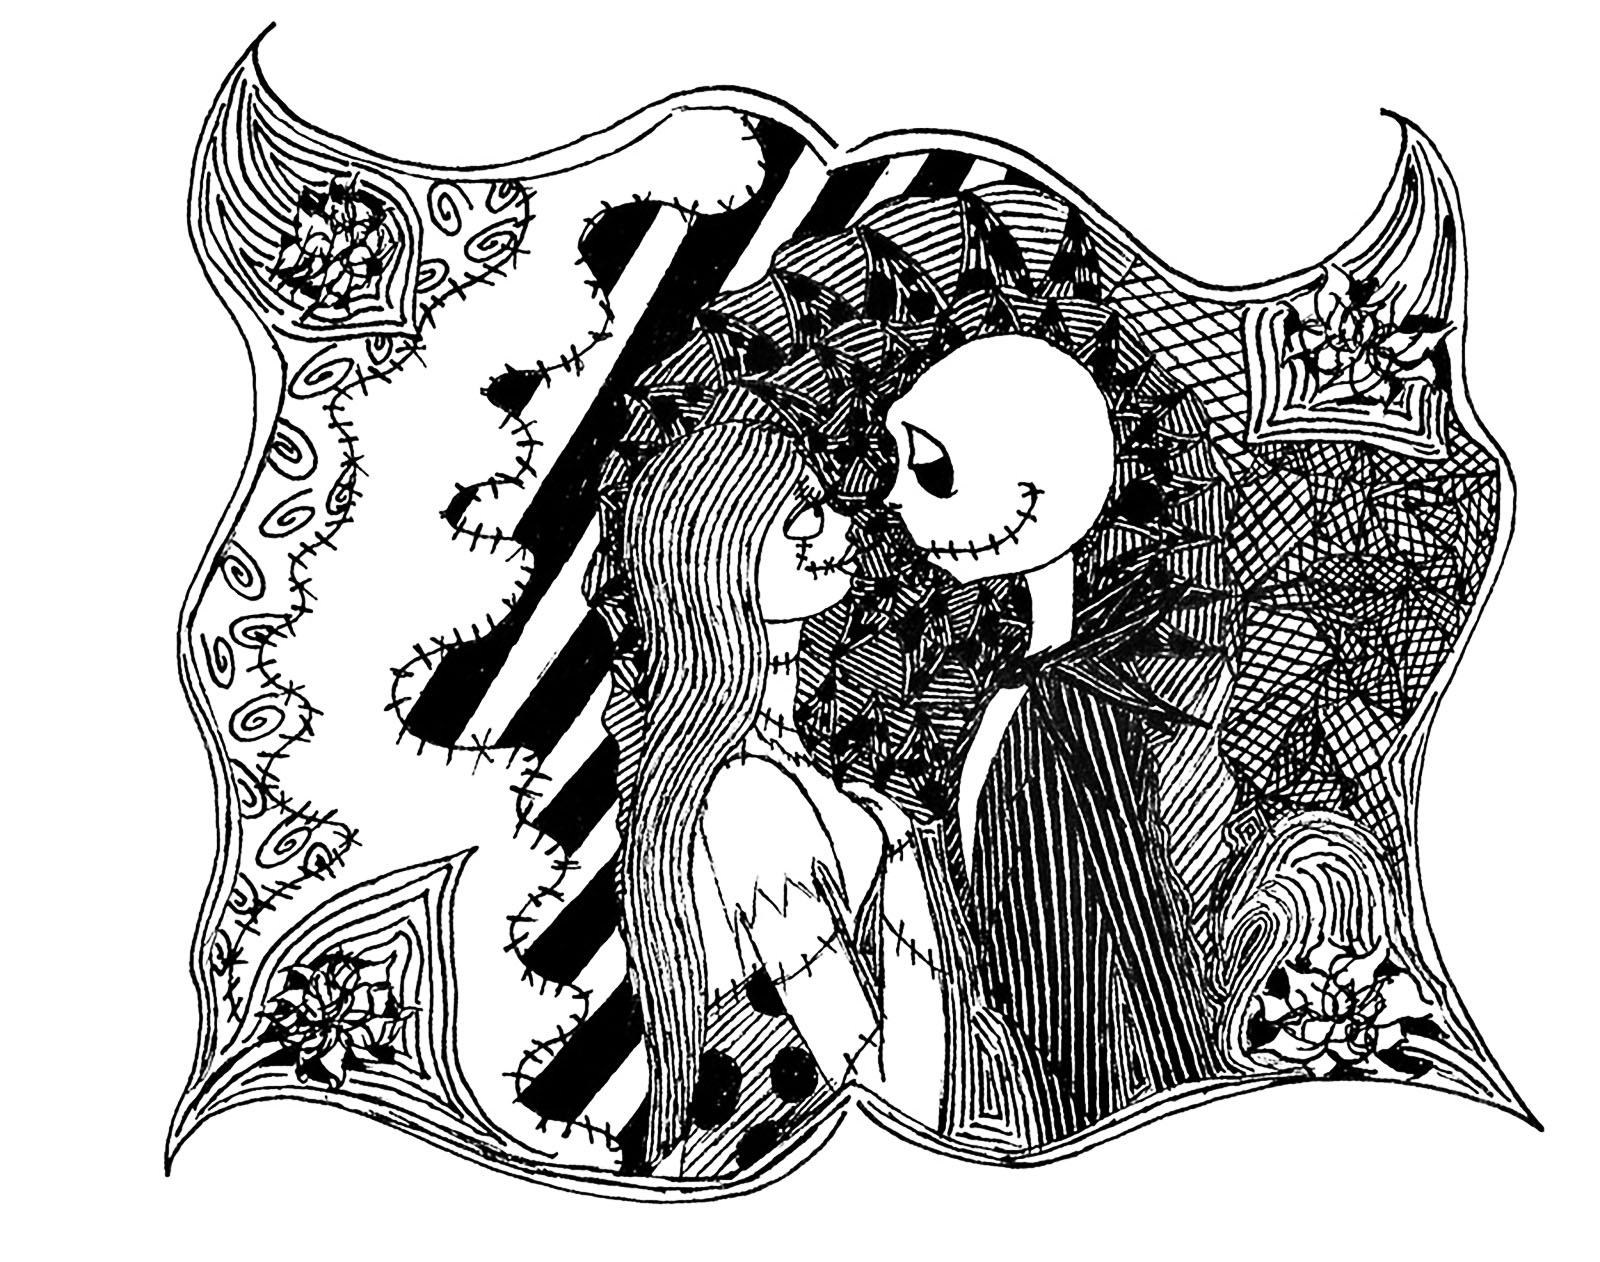 The nightmare before Christmas, by Tim Burton ... A coloring page for Halloween